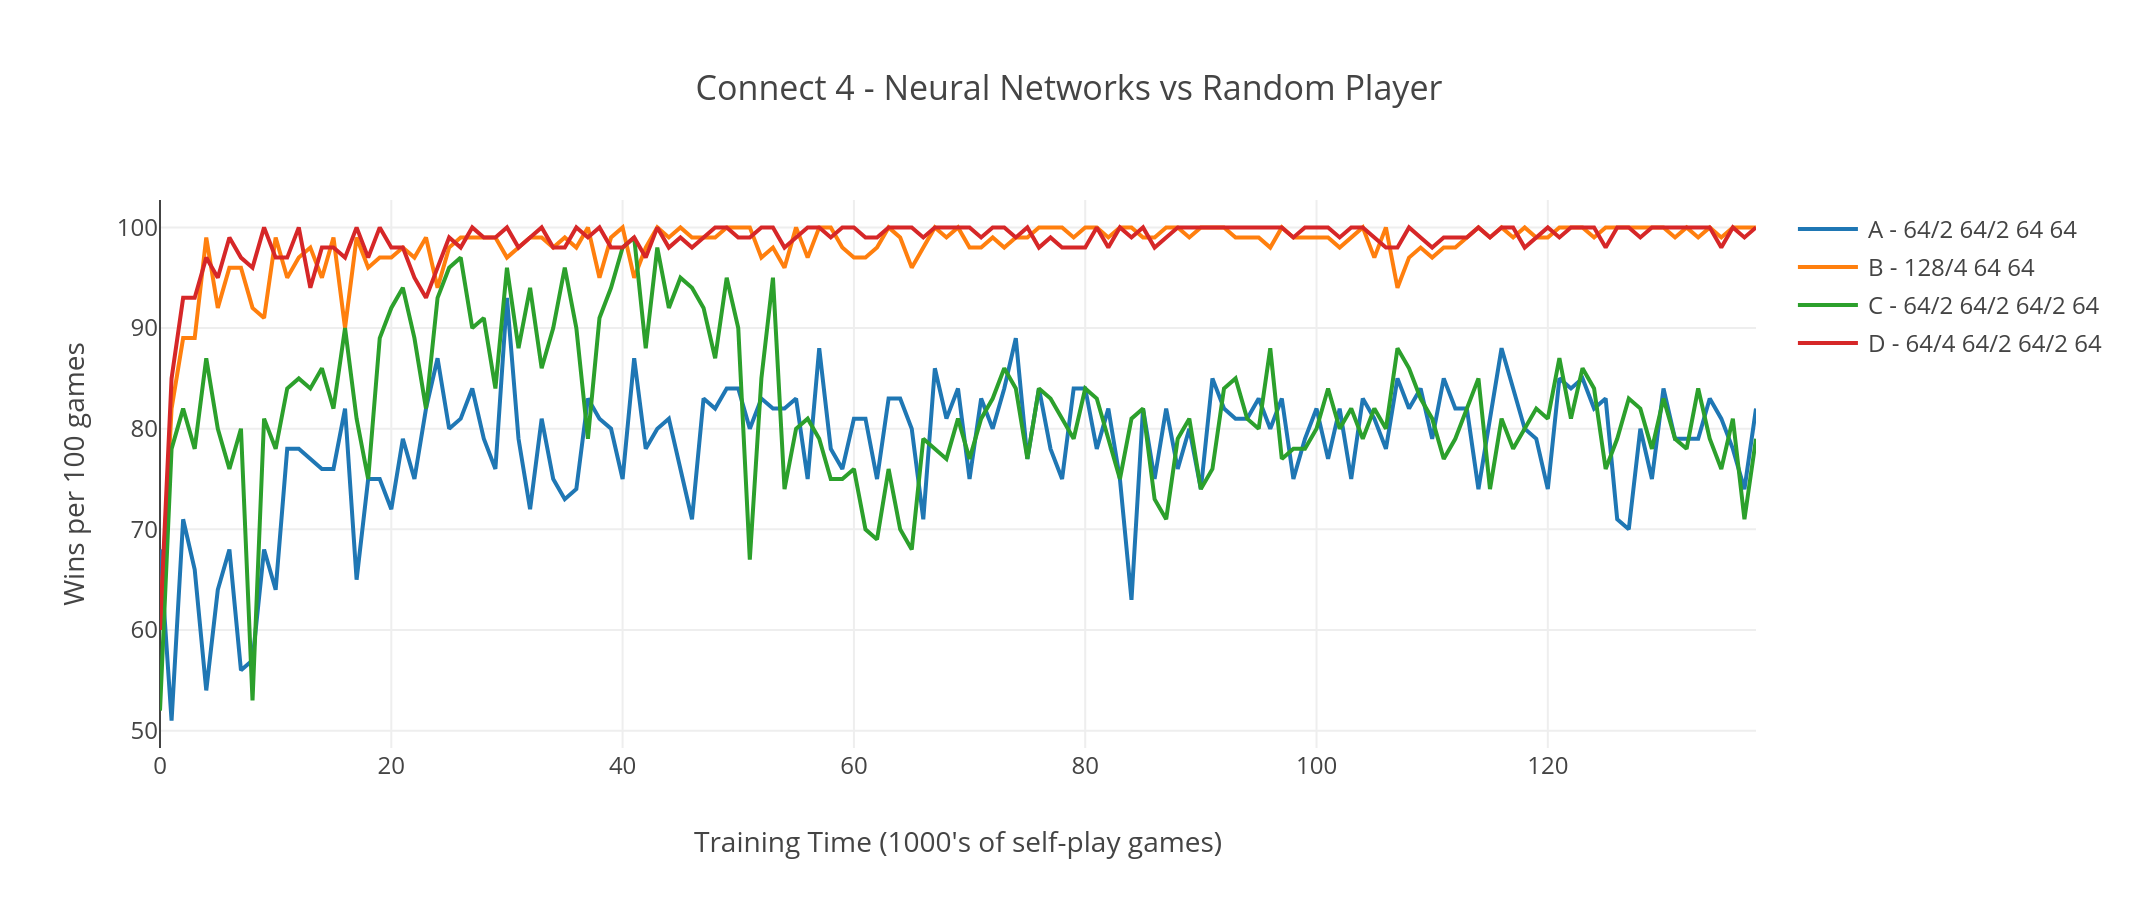 Graph showing Neural Networks vs Random Players in game of Connect 4